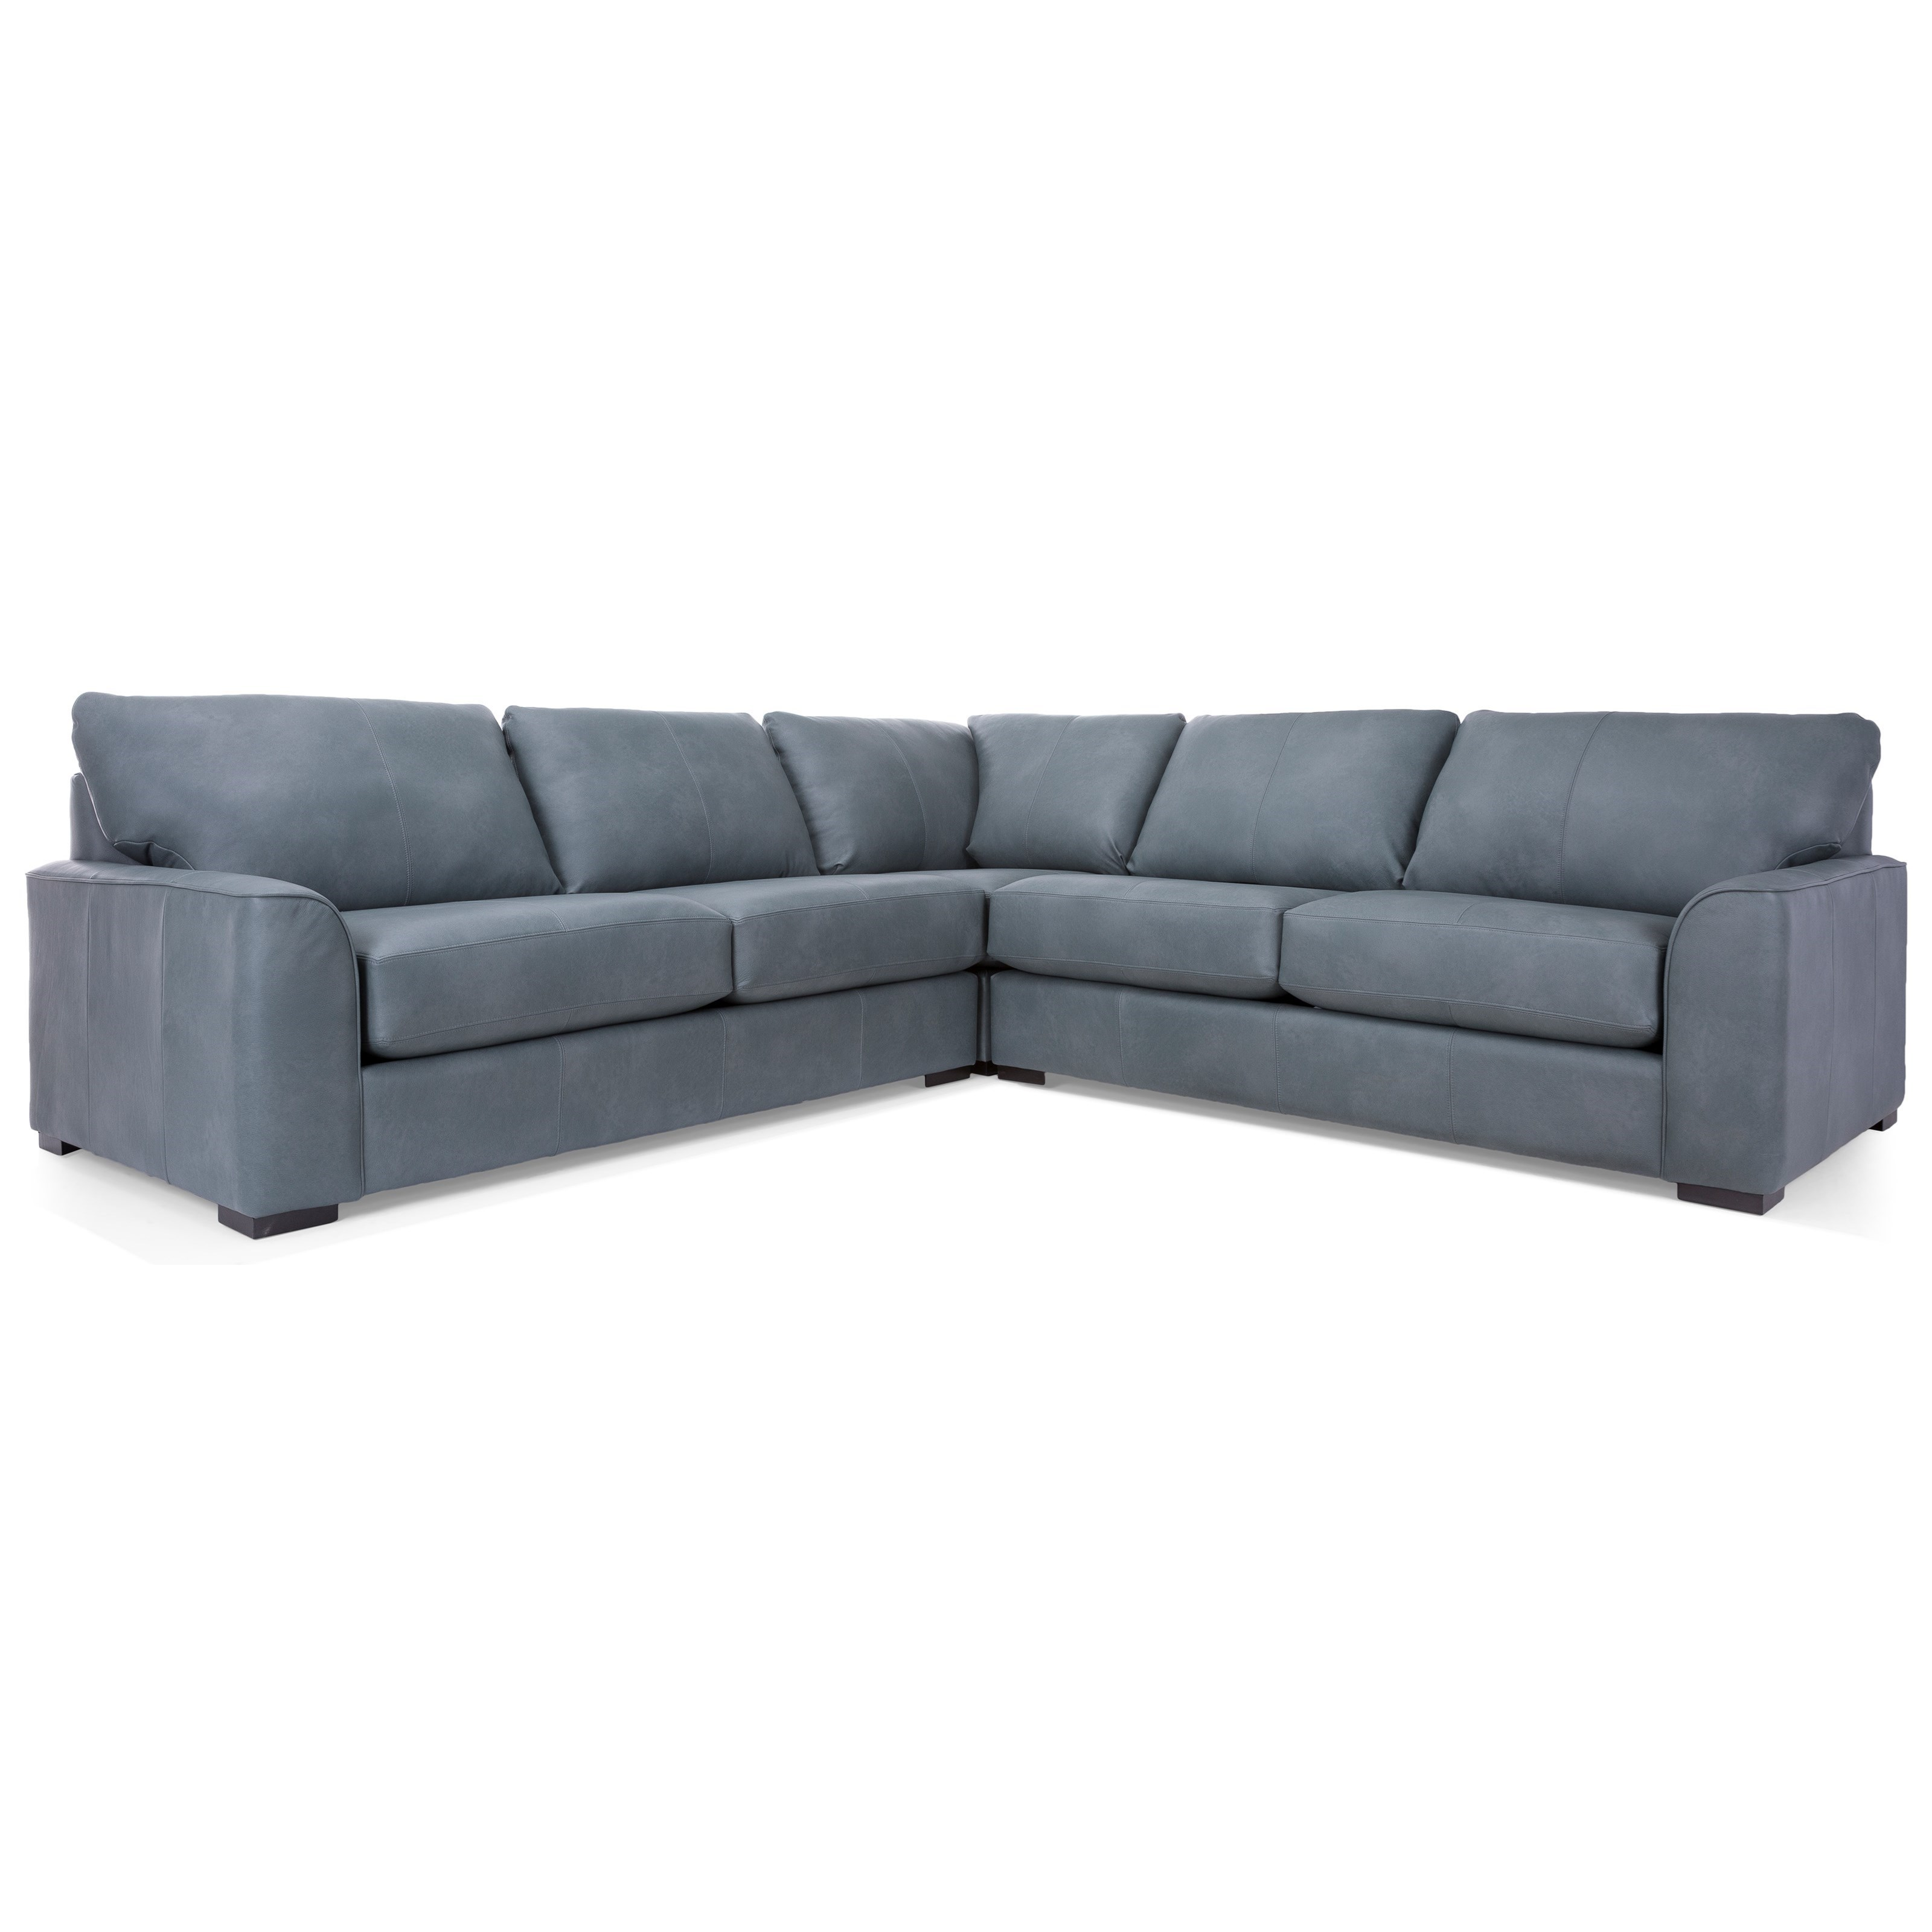 2786 3-Piece Sectional Sofa by Decor-Rest at Stoney Creek Furniture